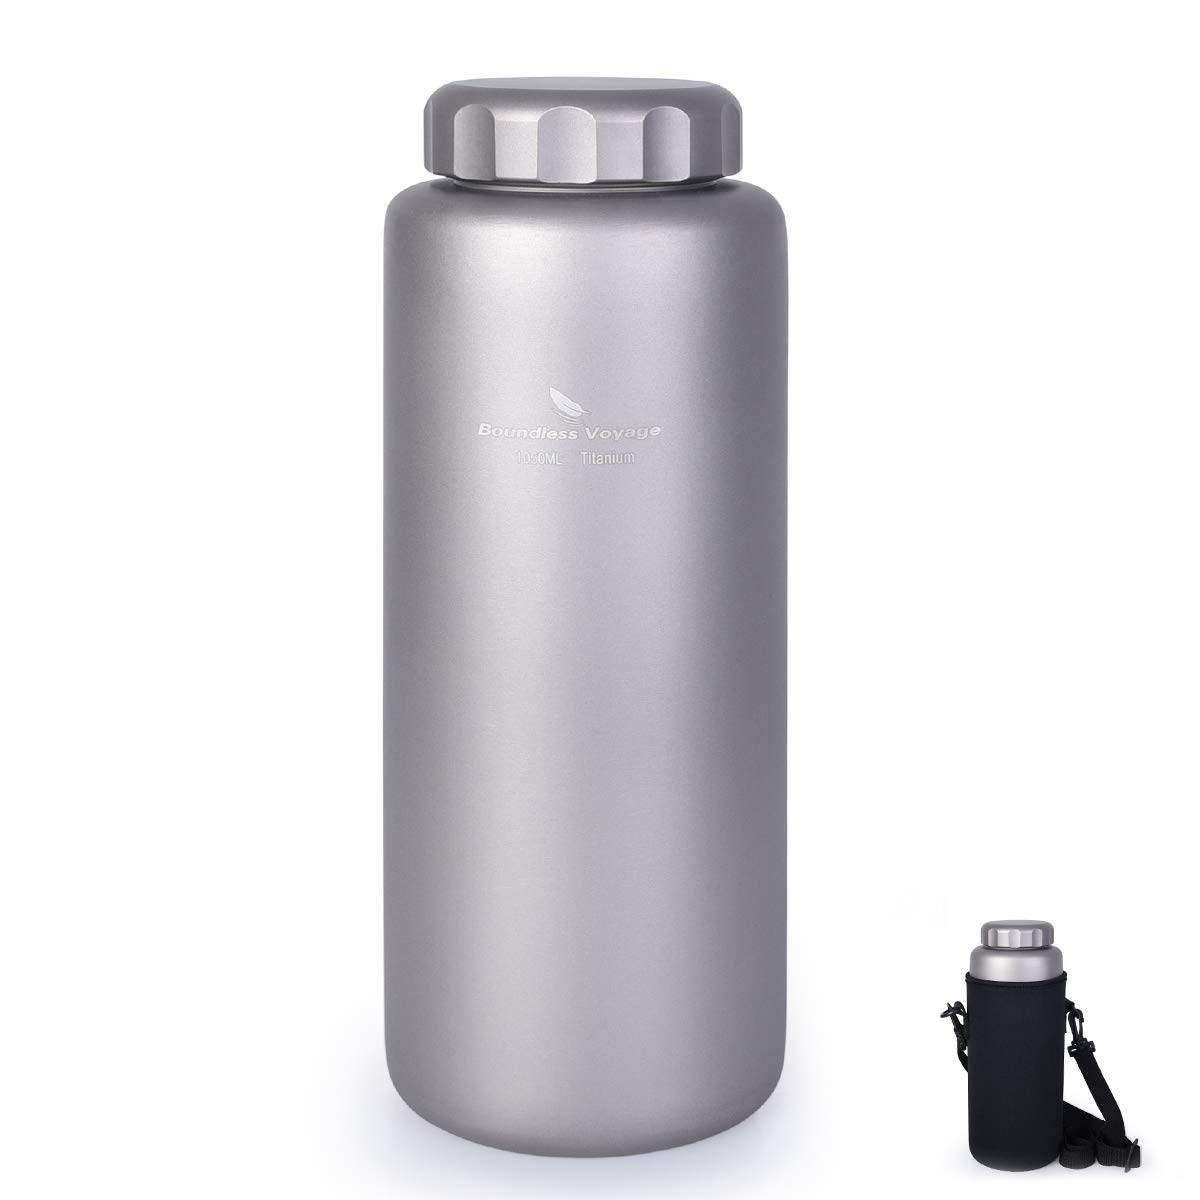 iBasingo 1050 ml/ 800ml/600ml/400ml Titanium Water Bottle Outdoor Leak-Proof Wide Mouth Sport Drinking Bottle Camping Tea Coffee Canteen Kettle for Hiking Climbing Running